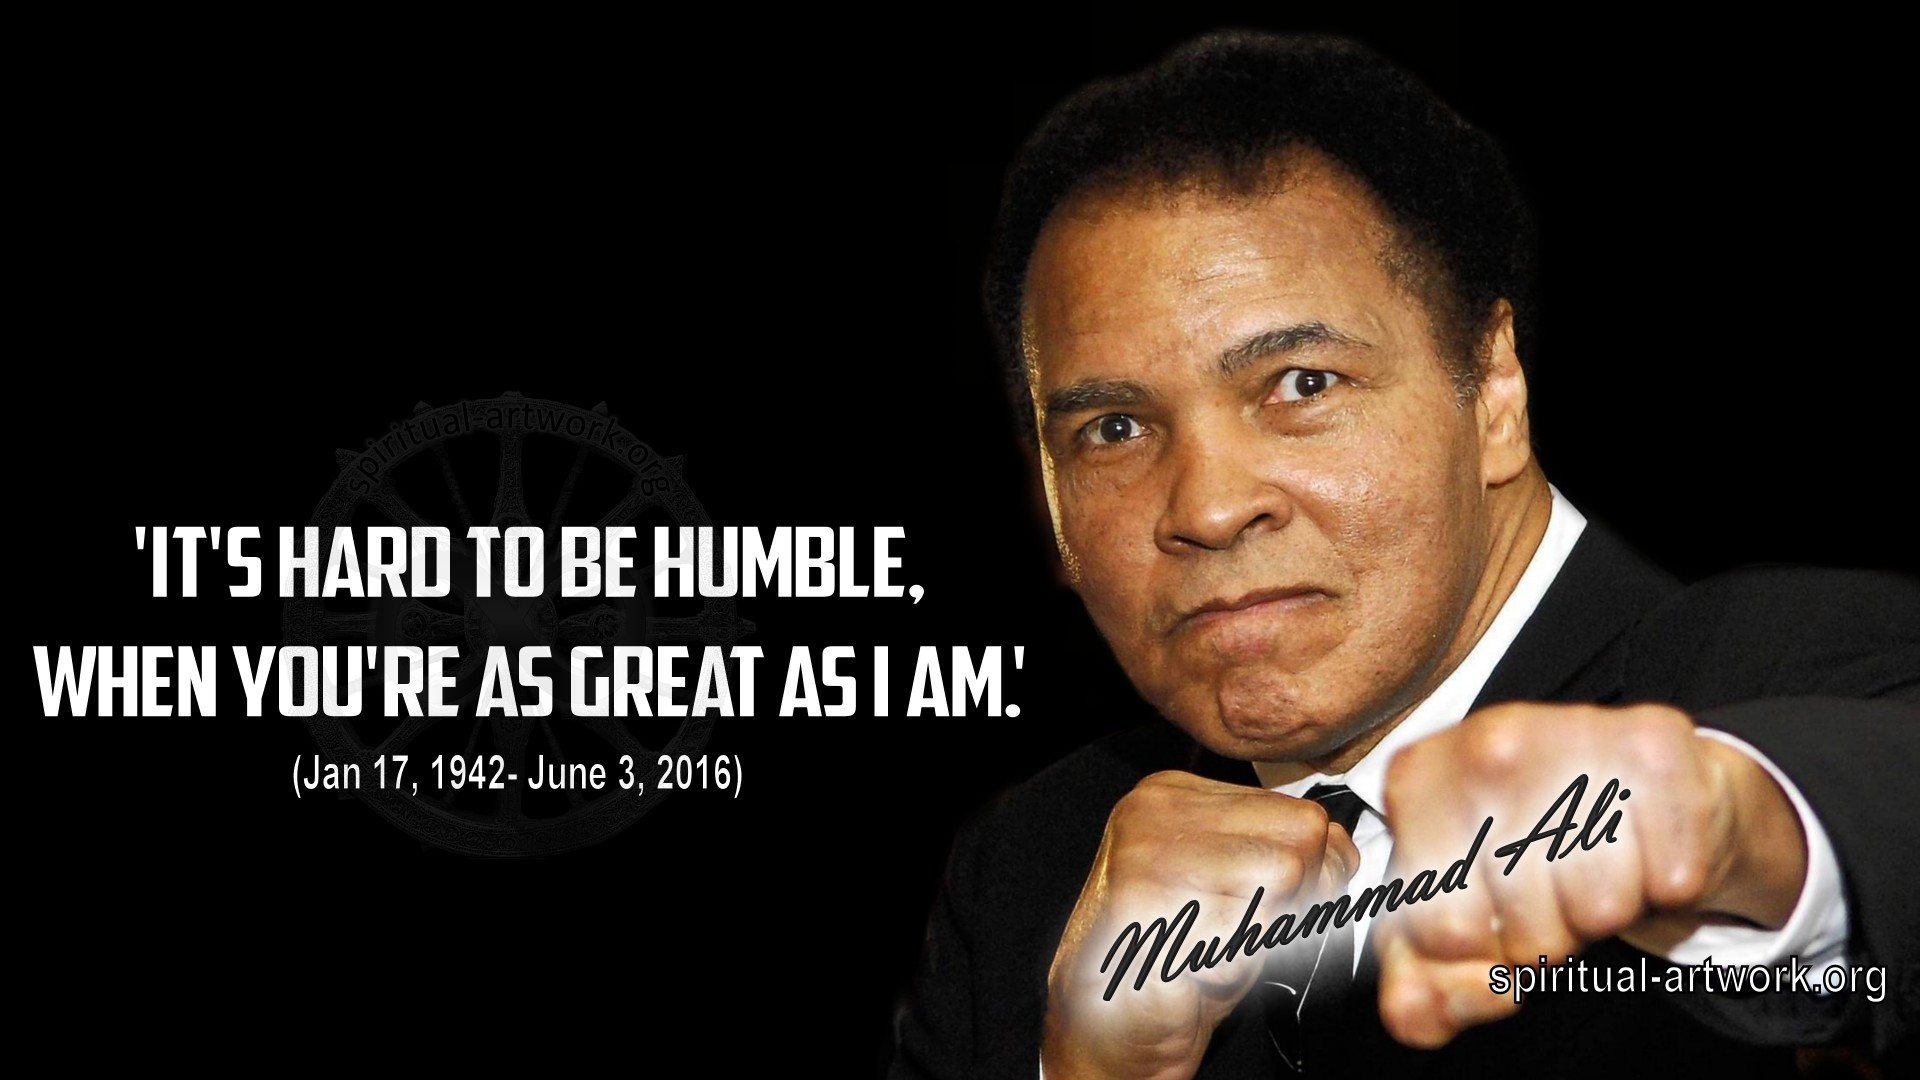 1920x1080 Muhammad Ali- Its Hard to be Humble when you're as great as I